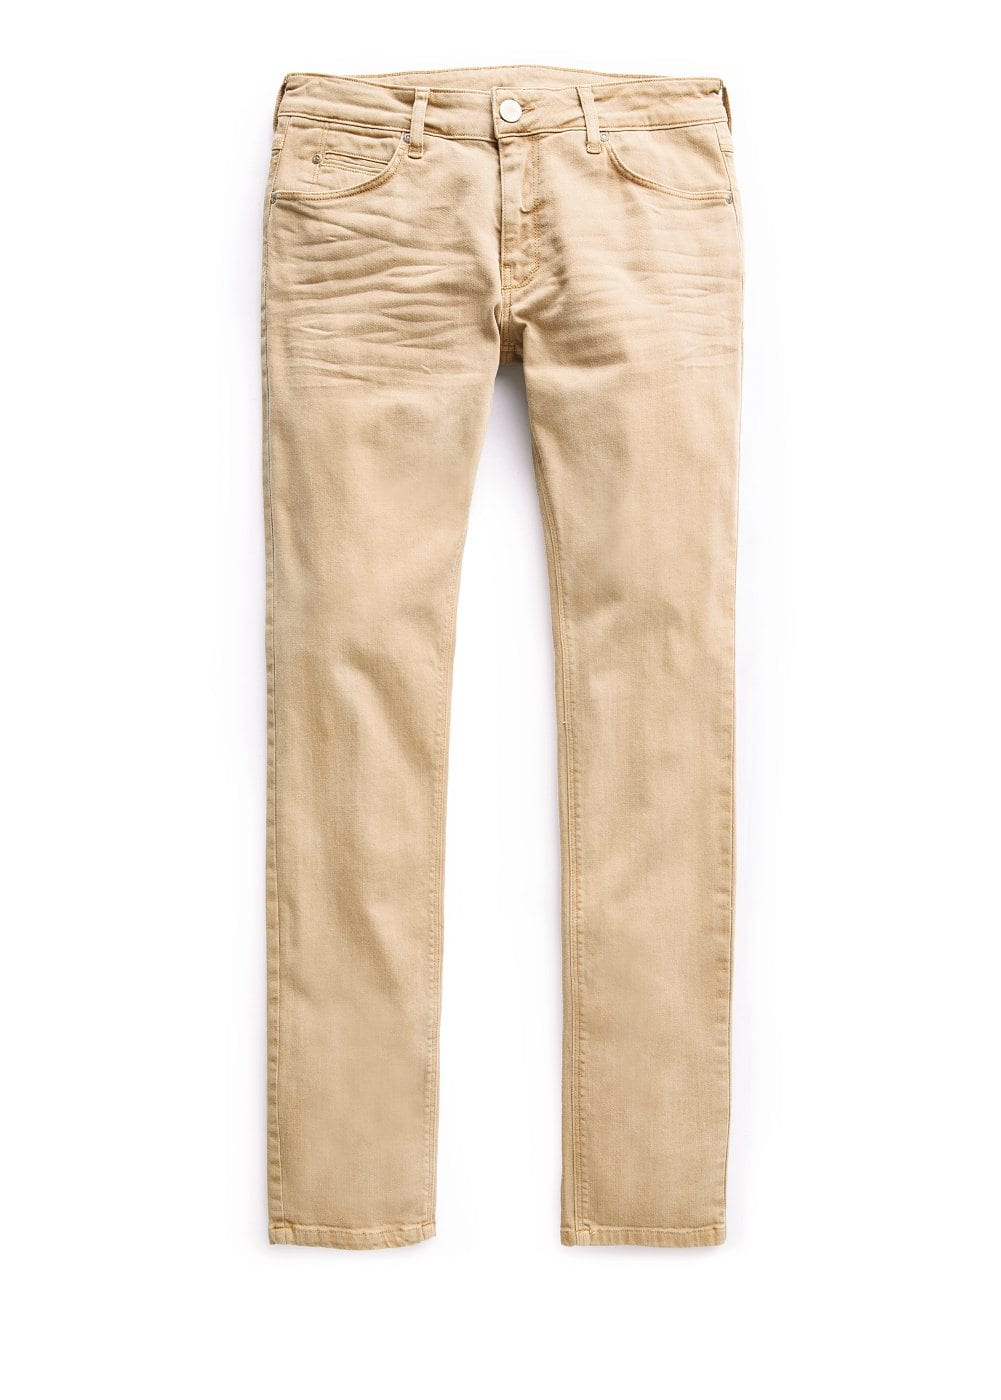 Jeans alex slim-fit color tostado | MANGO